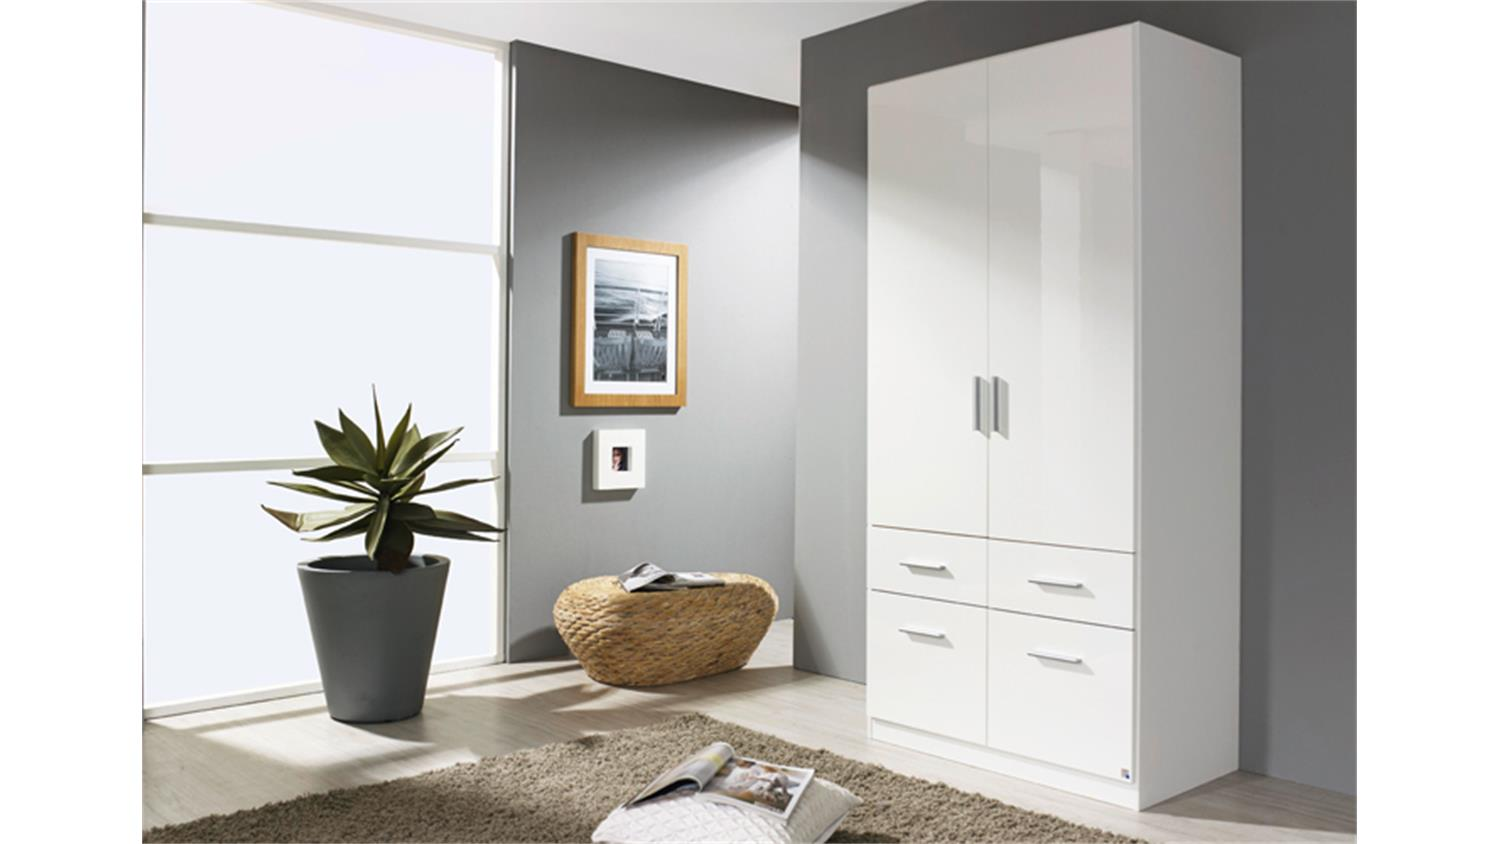 kleiderschrank i celle wei hochglanz 91 cm breit. Black Bedroom Furniture Sets. Home Design Ideas